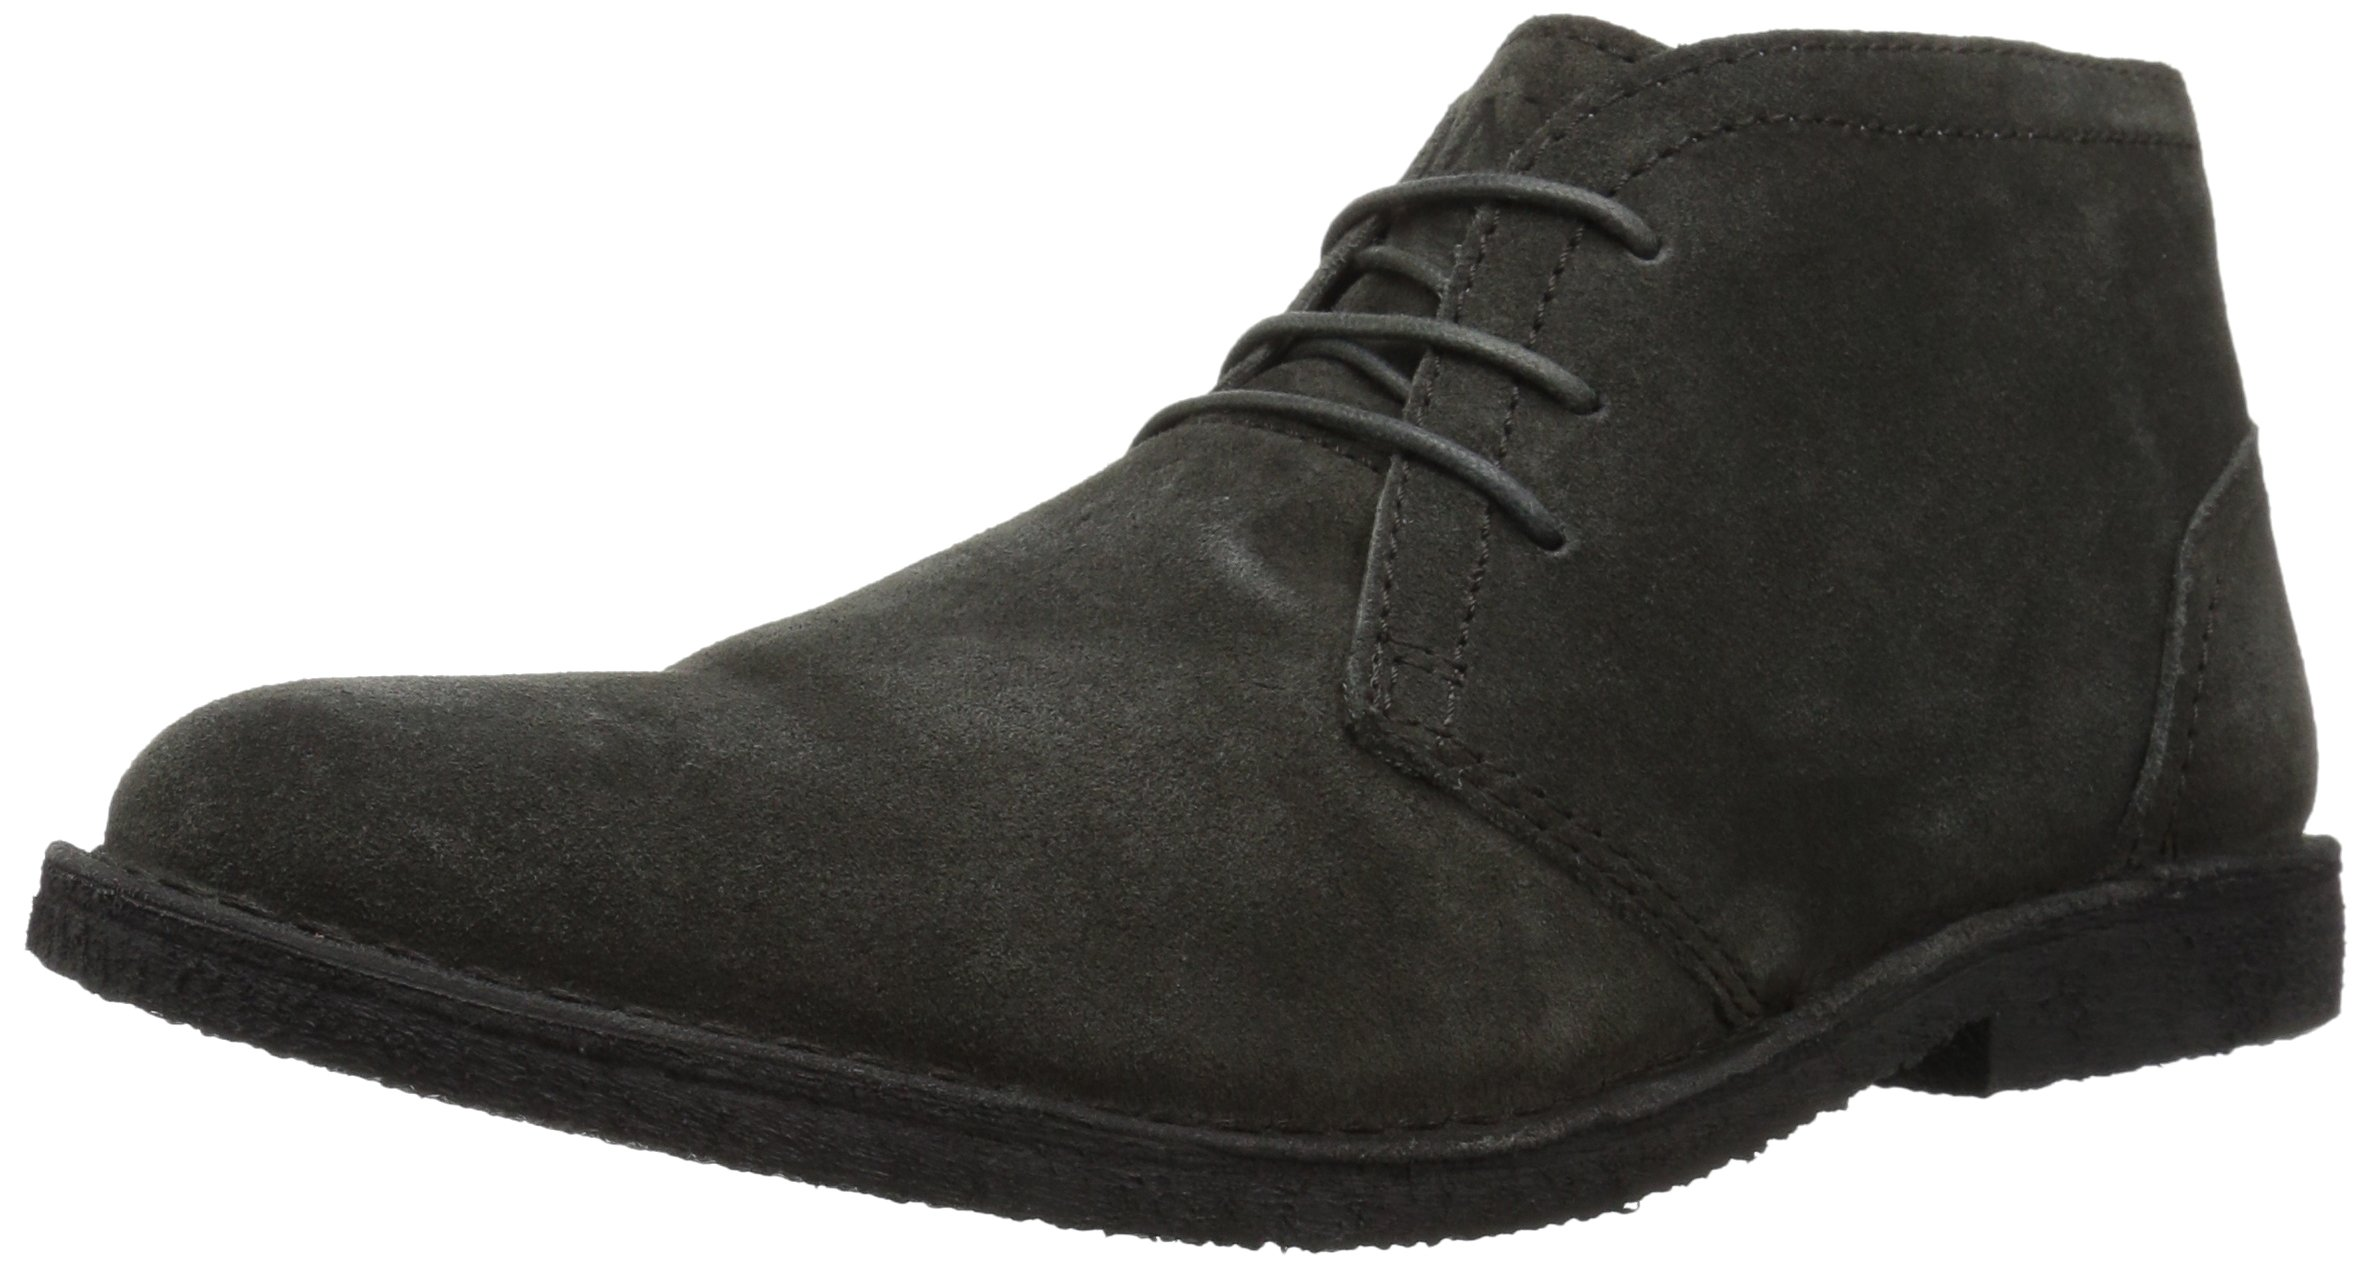 Marc New York Men's Walden Chukka Boot, Dark Grey/Black, 12 D US by Marc New York by Andrew Marc